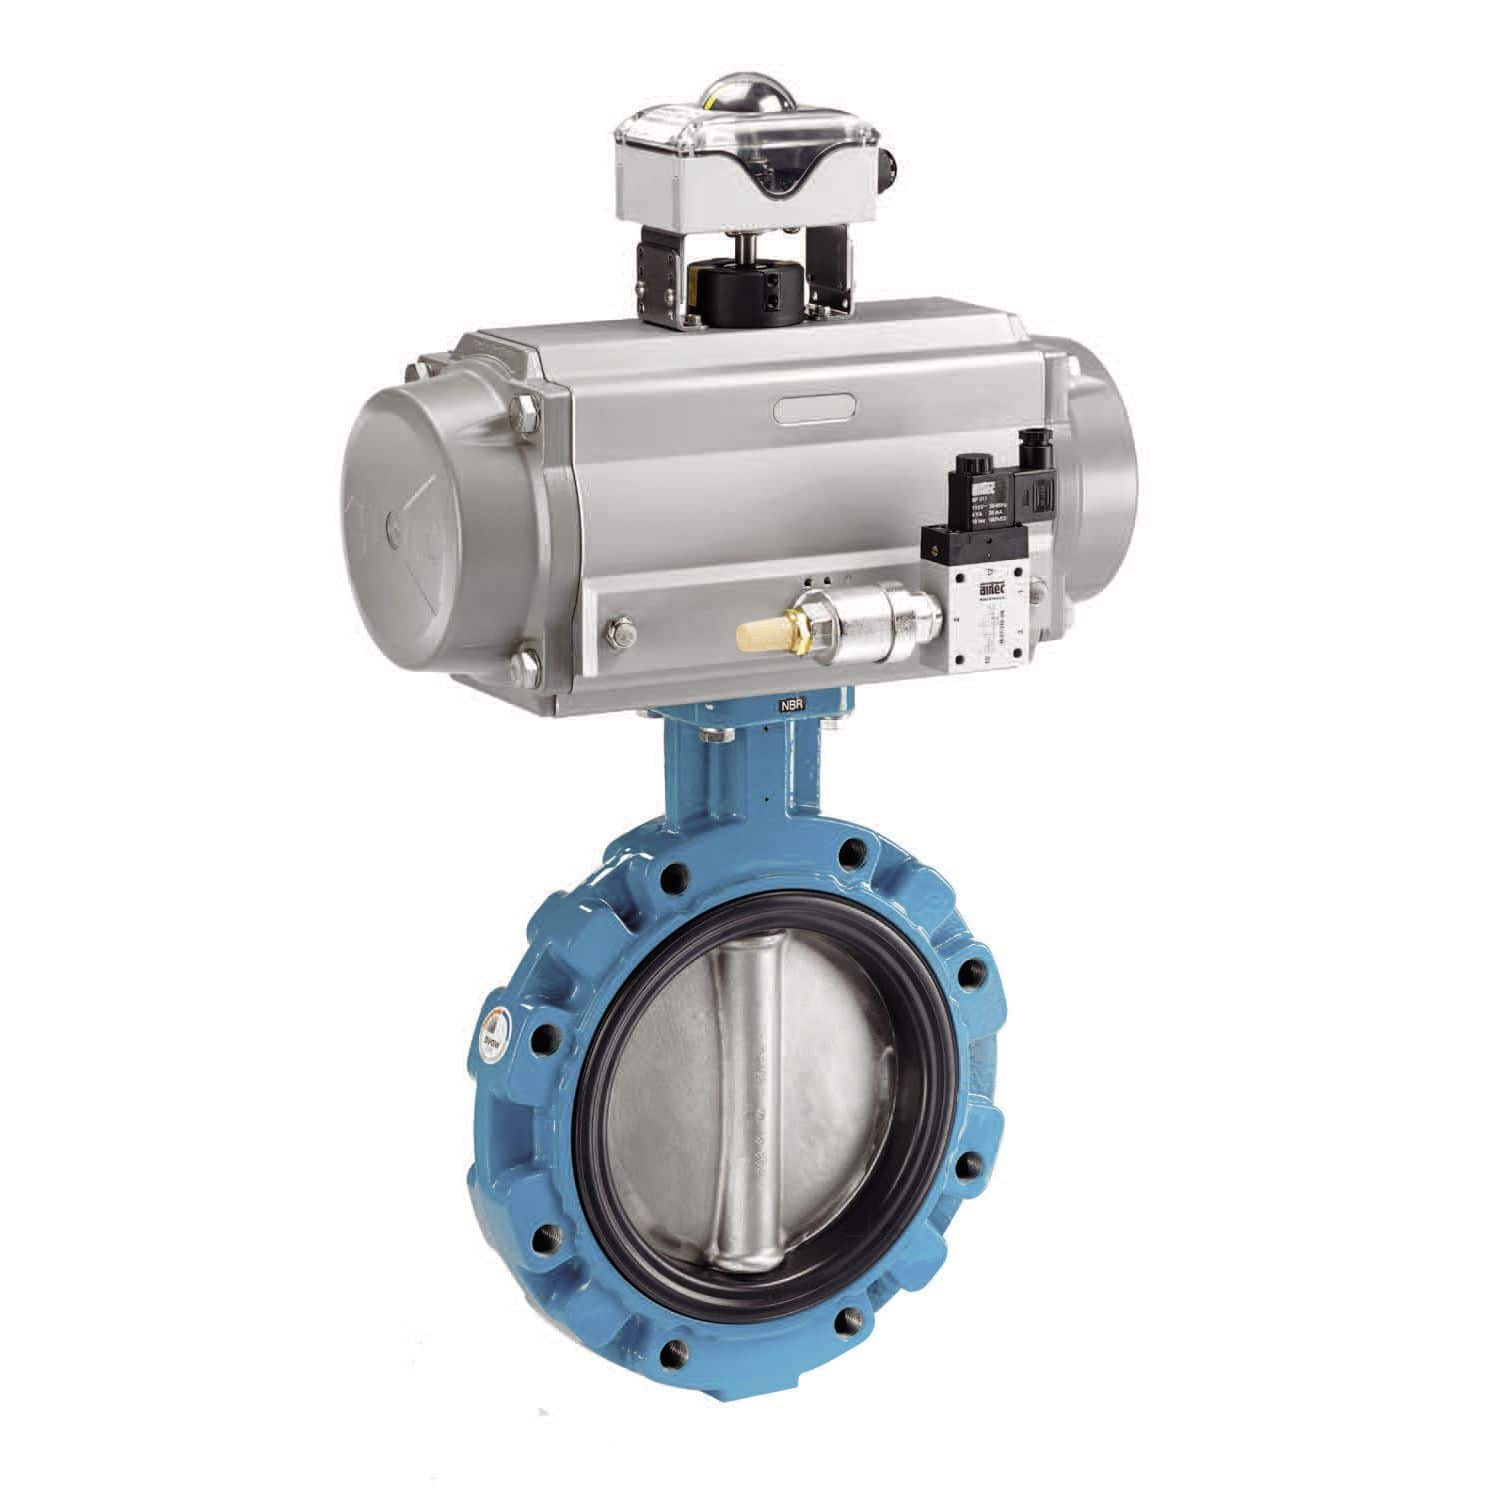 Global Butterfly Shut-Off Valve Market 2020 Emerging Scope, Types,  Applications, Forecast and COVID-19 Impact Analysis 2025 – Owned